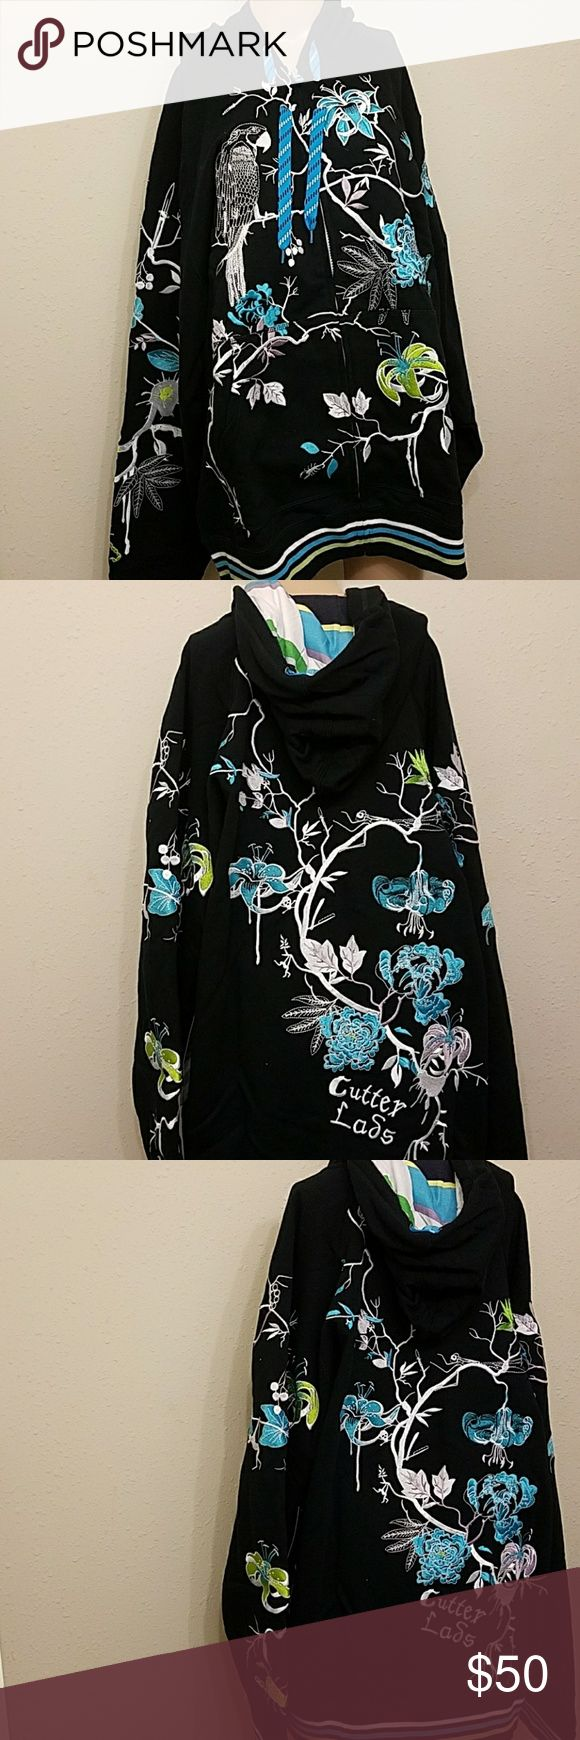 Artful Dodger Flower Hoodie 3XL NWT Beautiful and intricately adorned with embroidered appliques.  Drawstring Hoodie with striped interior. Artful Dodger Shirts Sweatshirts & Hoodies